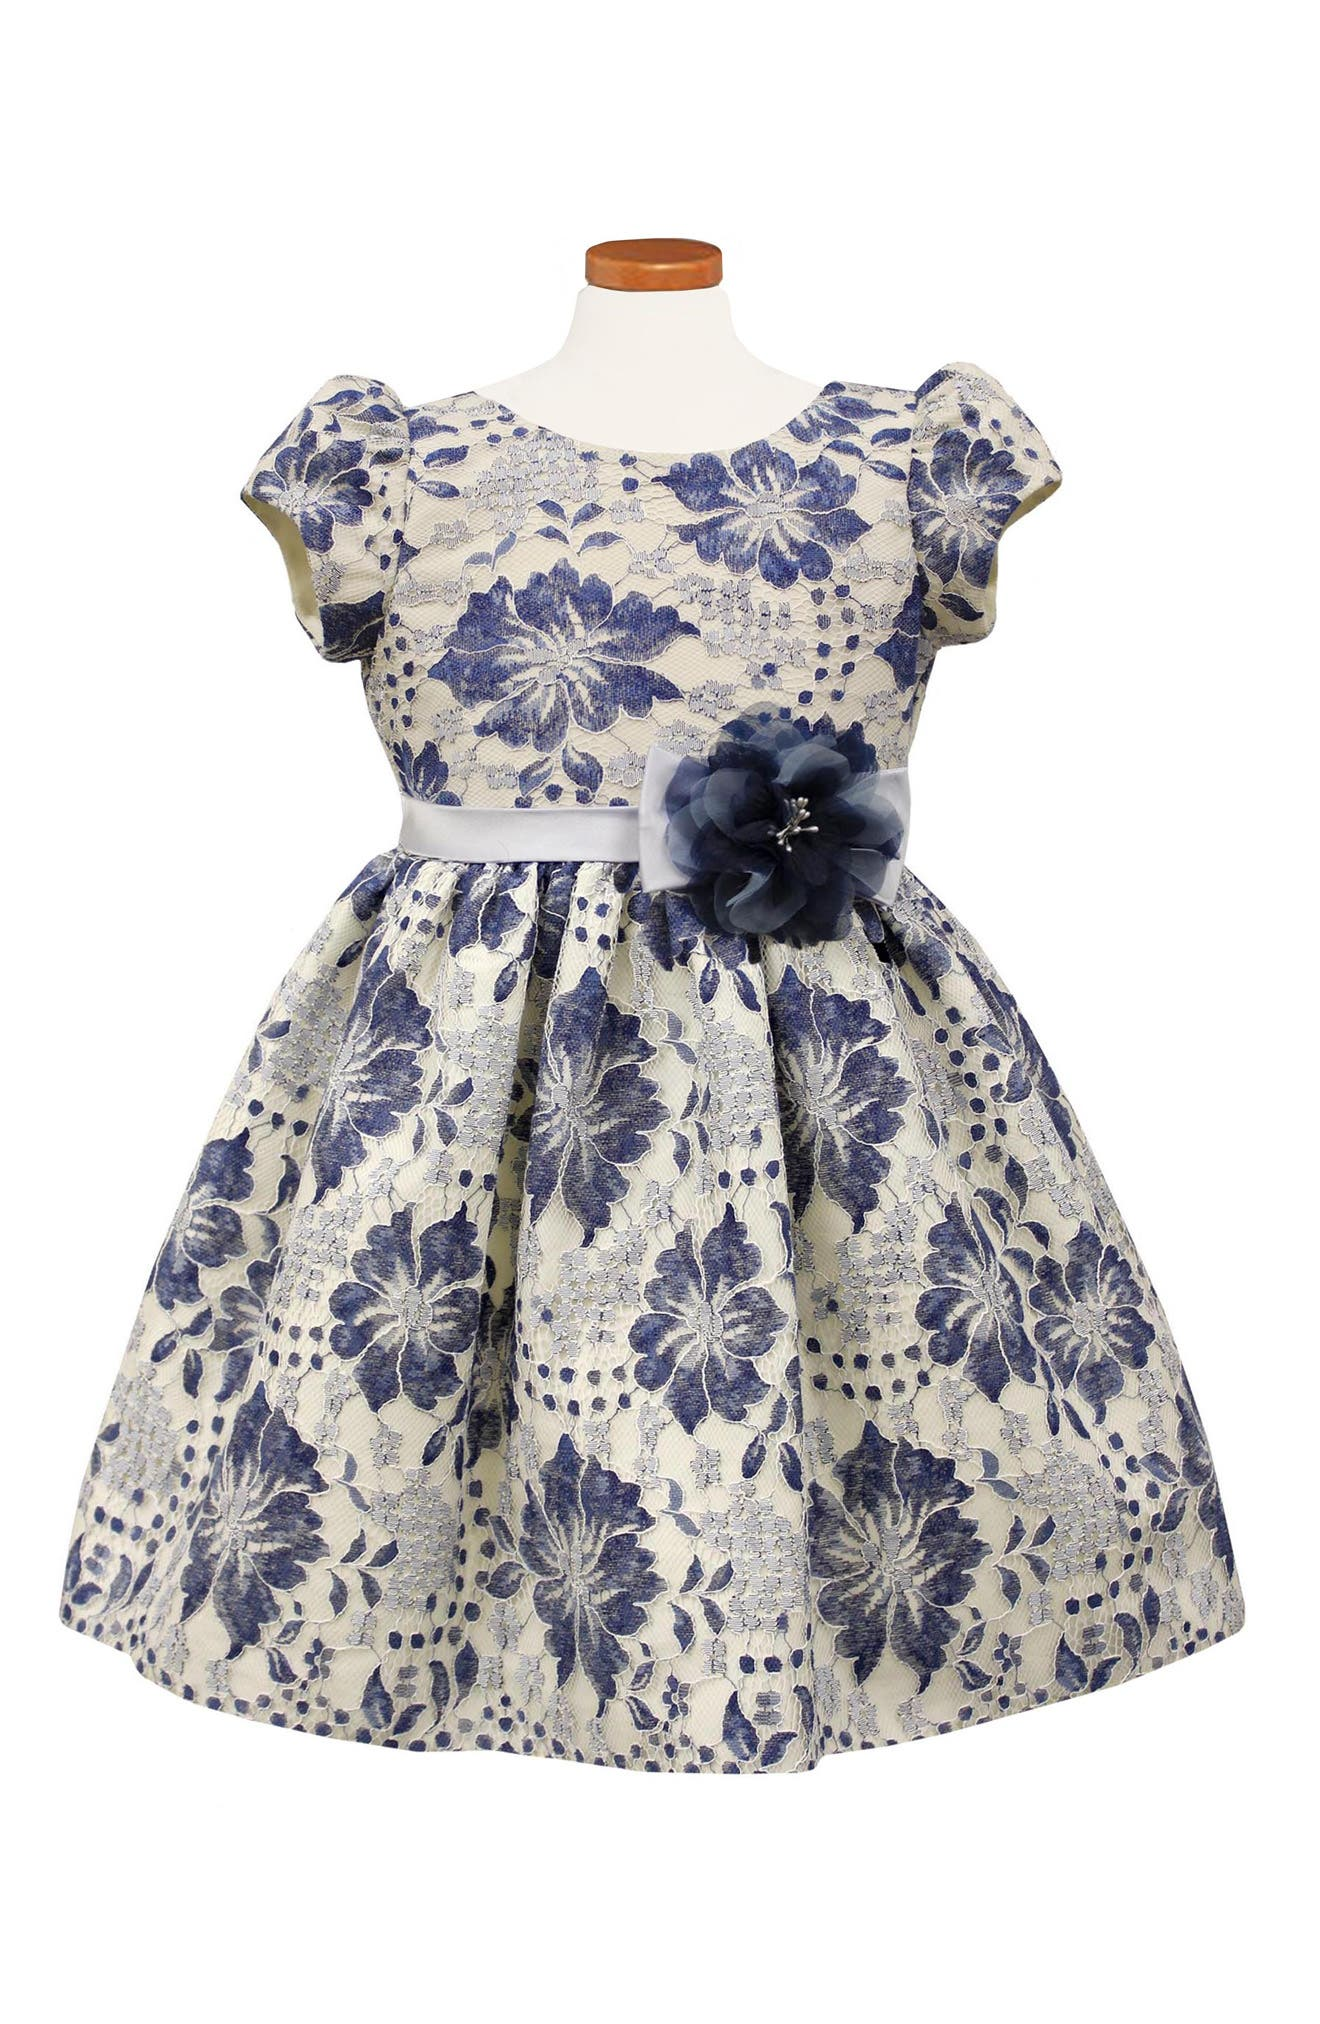 Main Image - Sorbet Floral Lace Dress (Toddler Girls & Little Girls)